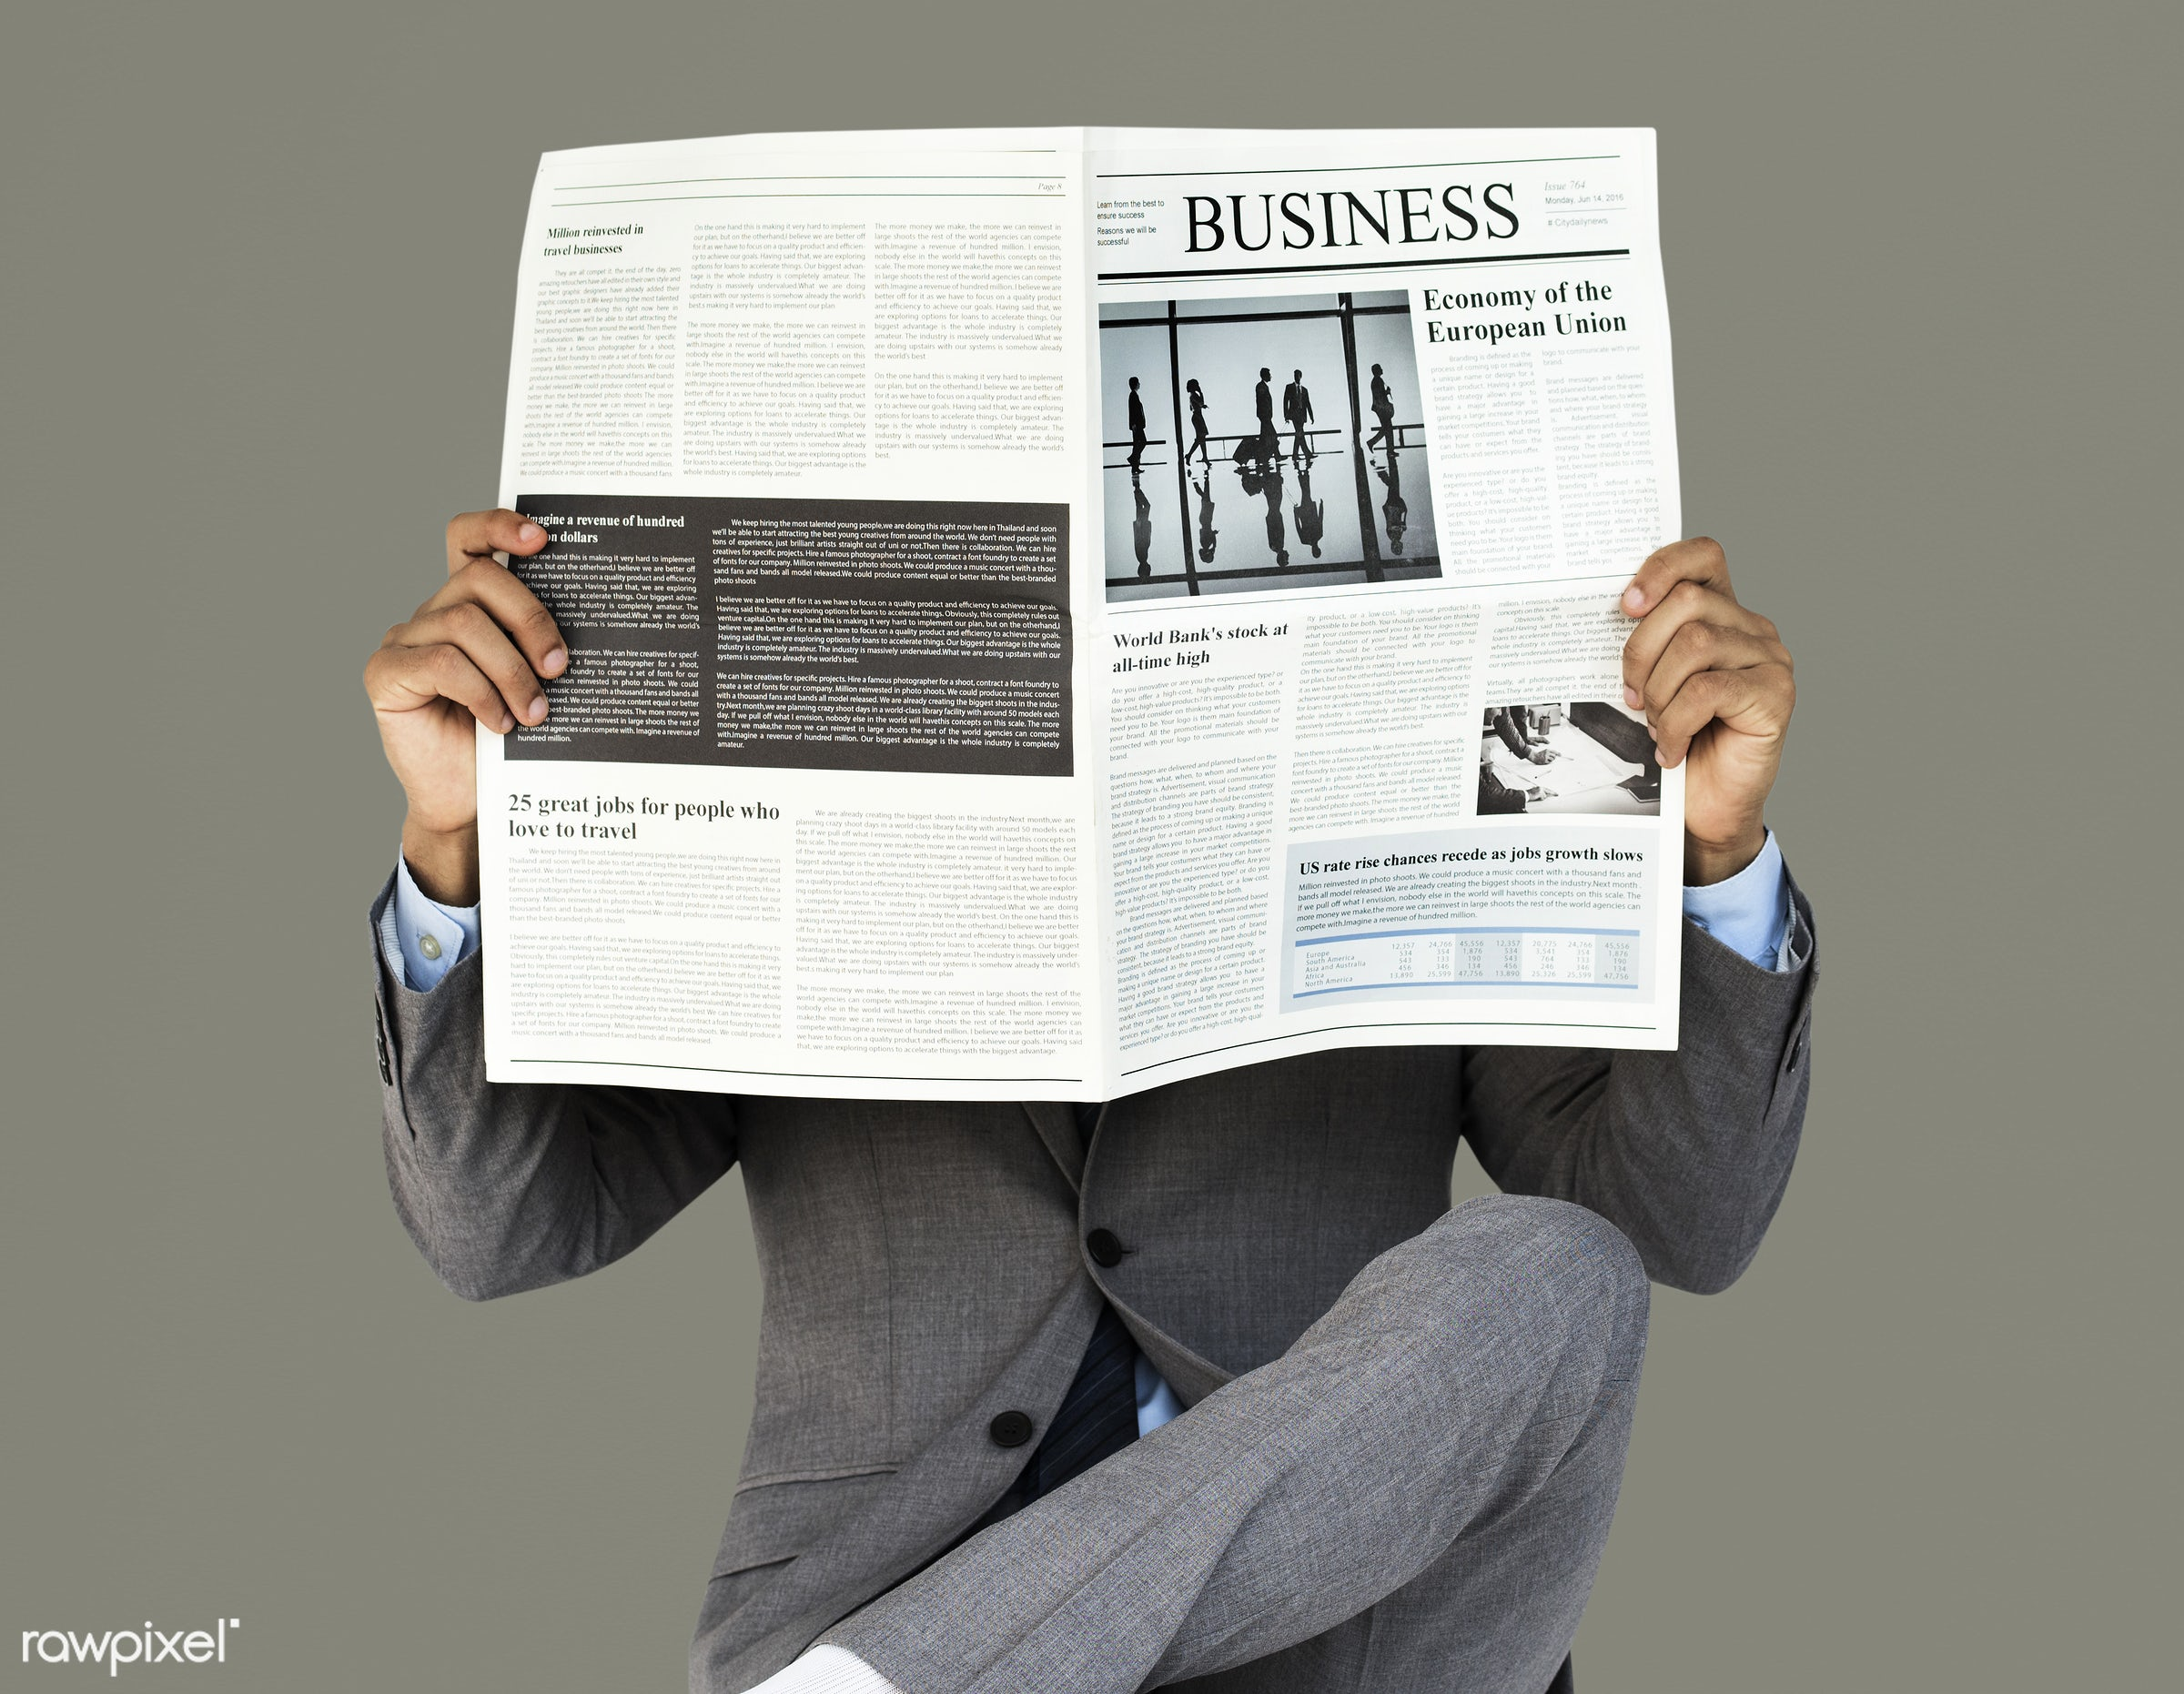 expression, studio, person, reading, business newspaper, business wear, people, formal dressing, business, read, man, formal...